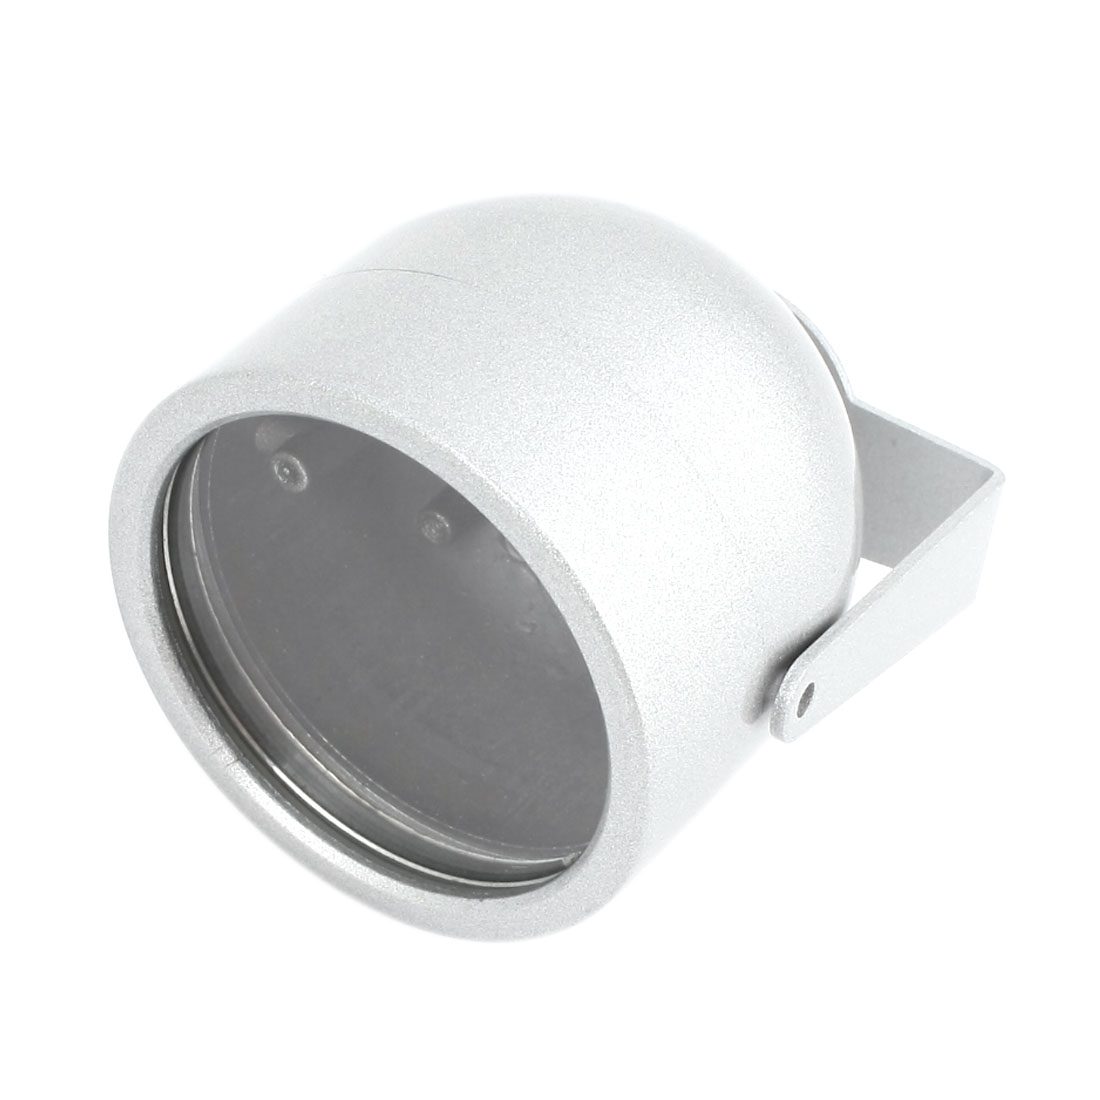 "Oval Shaped Silver Gray Metal CCTV Camera Housing Case 2.8"" High"